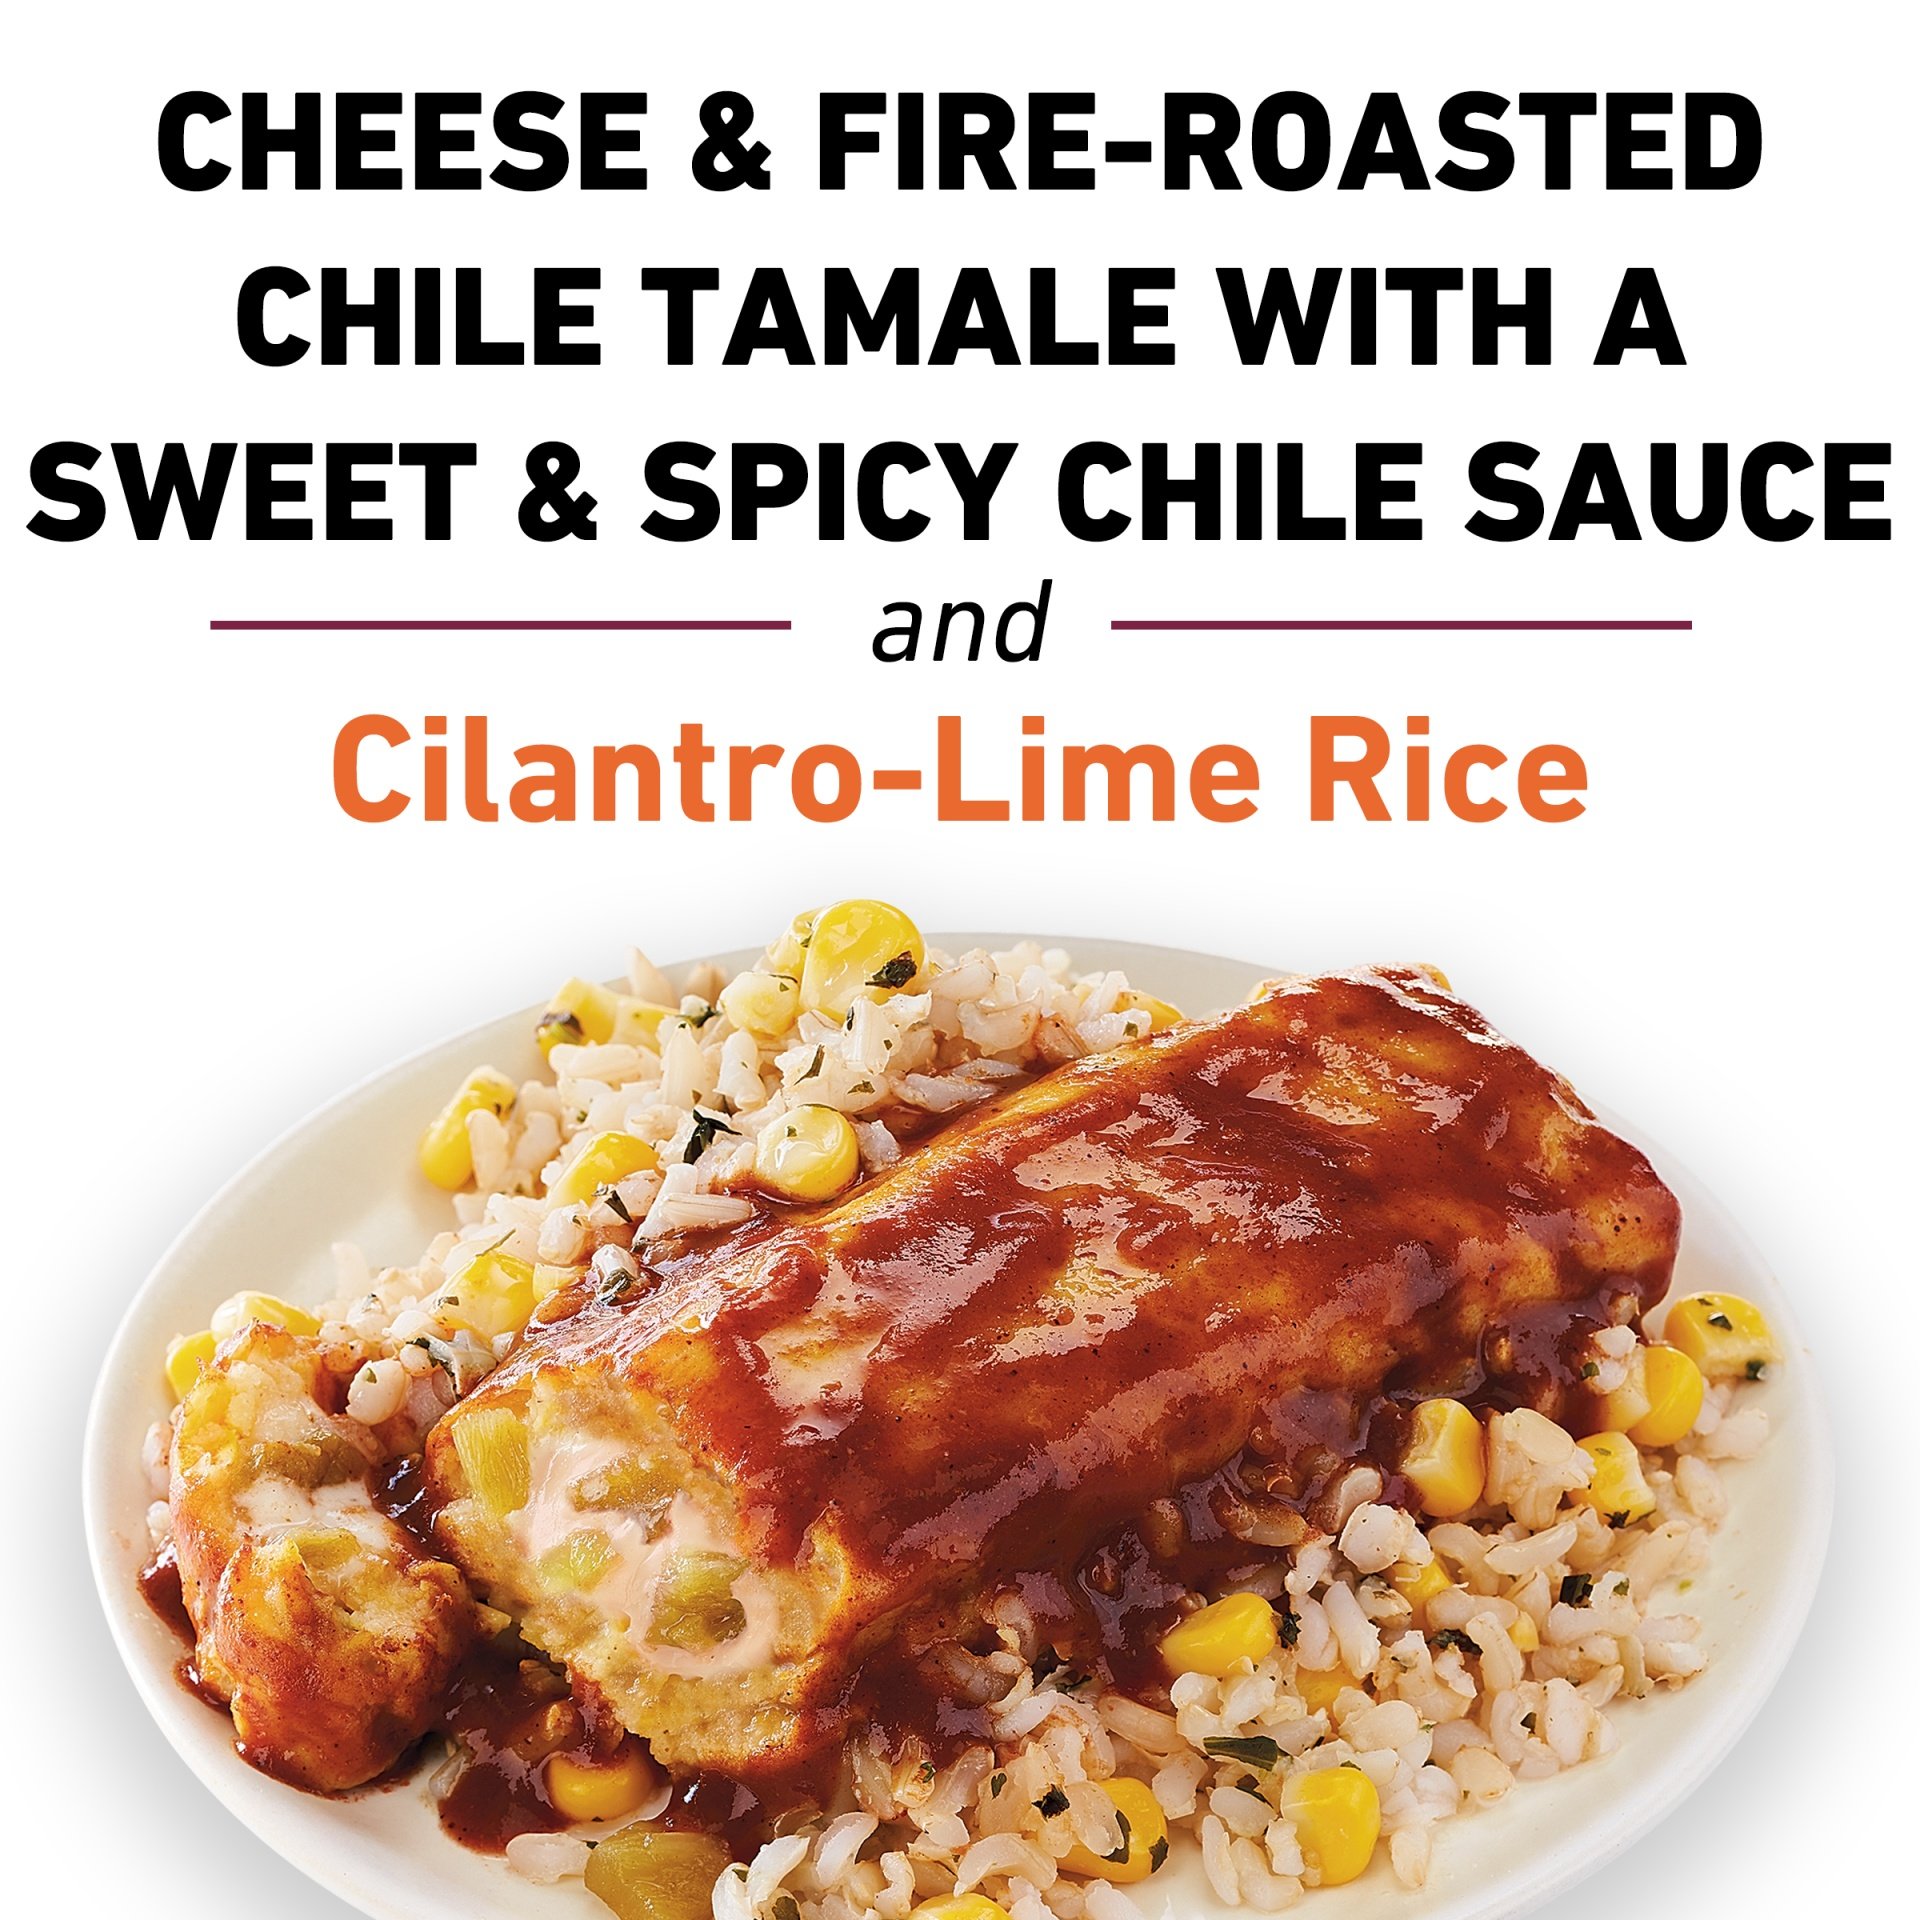 slide 9 of 9, Lean Cuisine Marketplace Cheese & Fire Roasted Chile Tamale,